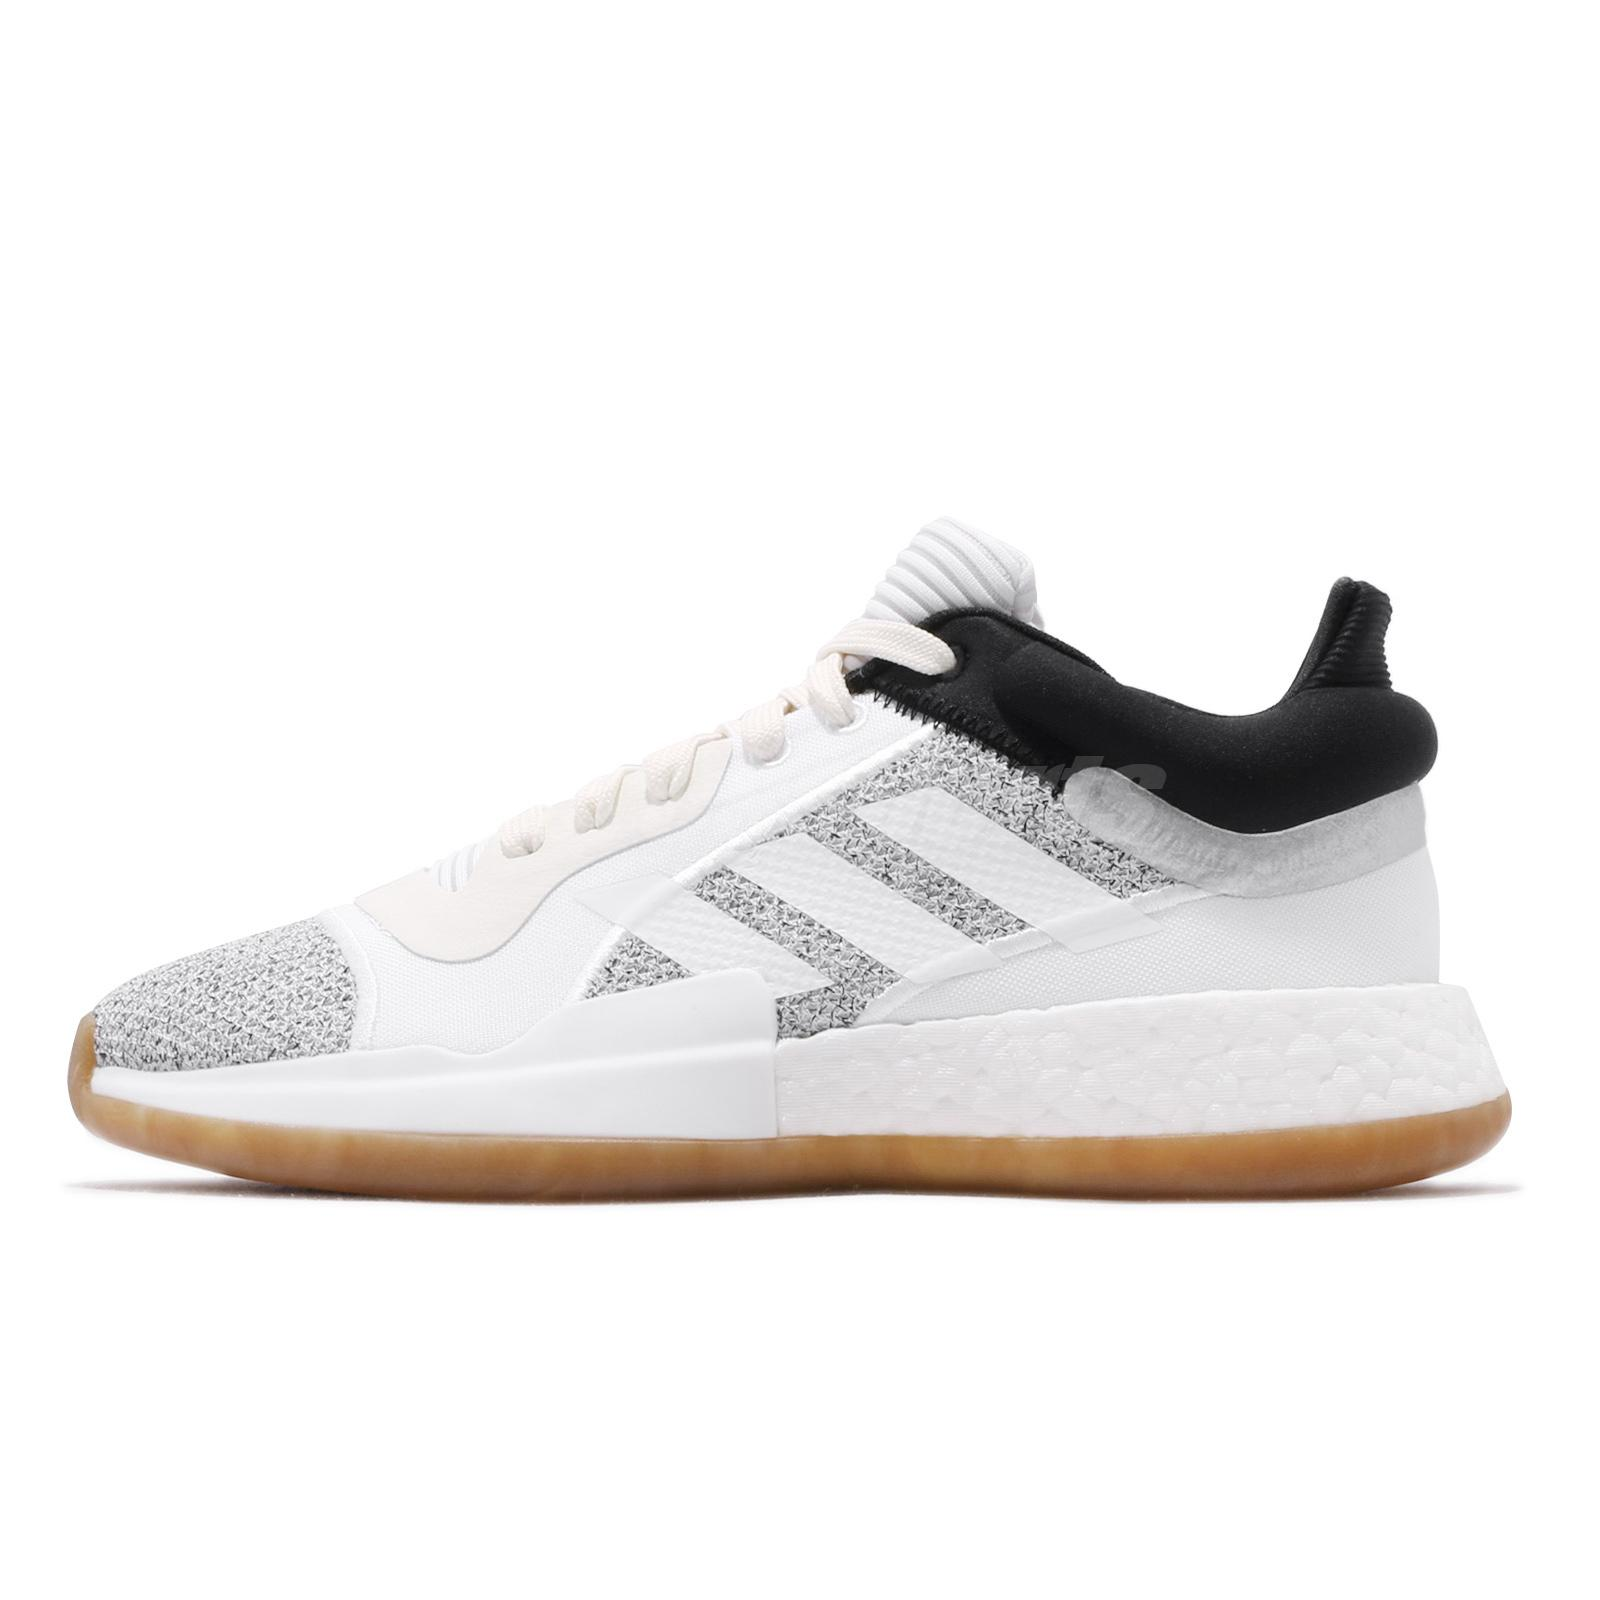 Details about adidas Marquee Boost Low Off White Black Gum Men Basketball Shoes Sneaker D96933